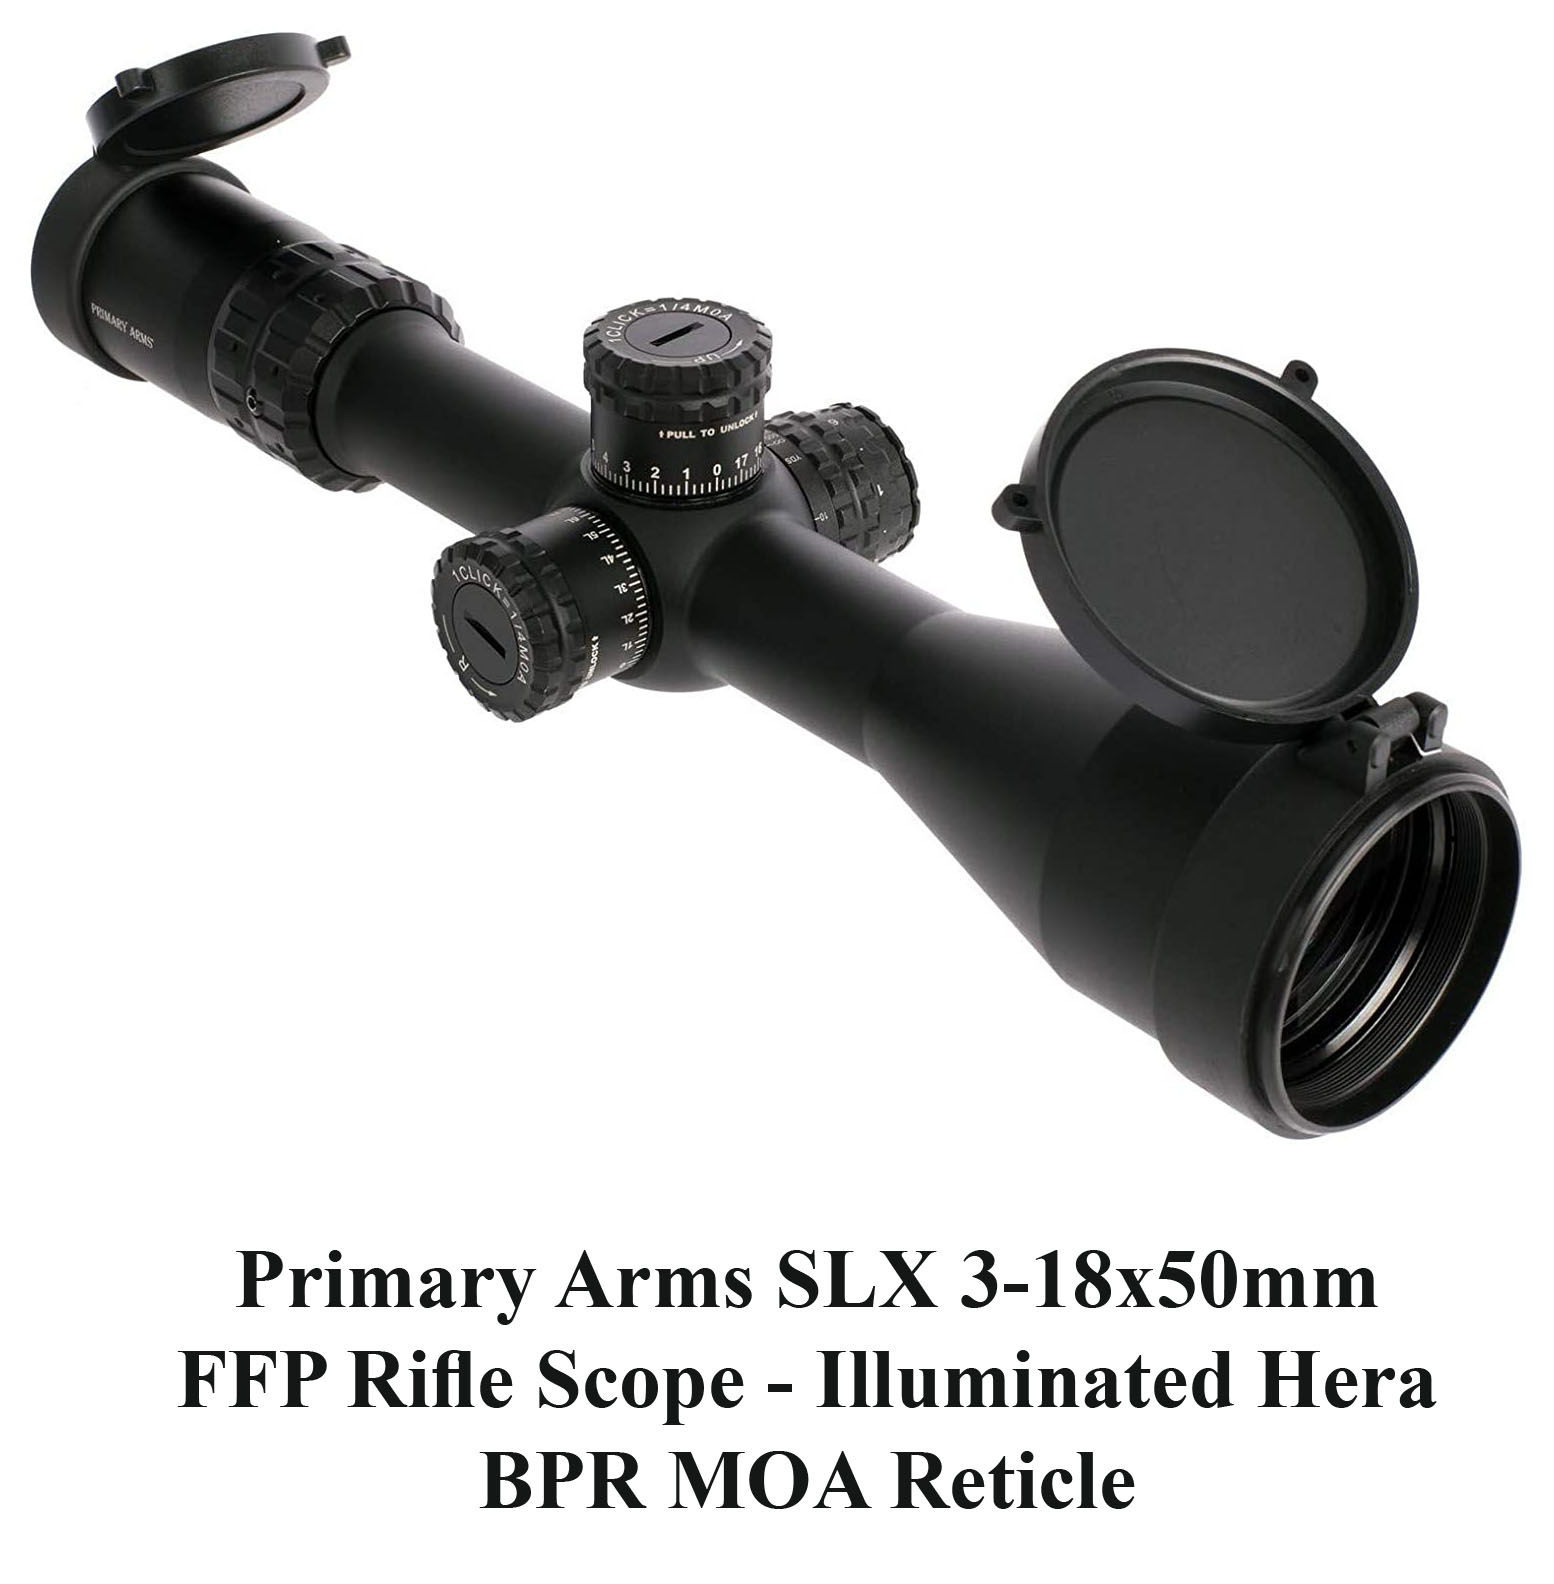 Primary Arms SLX 3-18x50mm FFP Rifle Scope